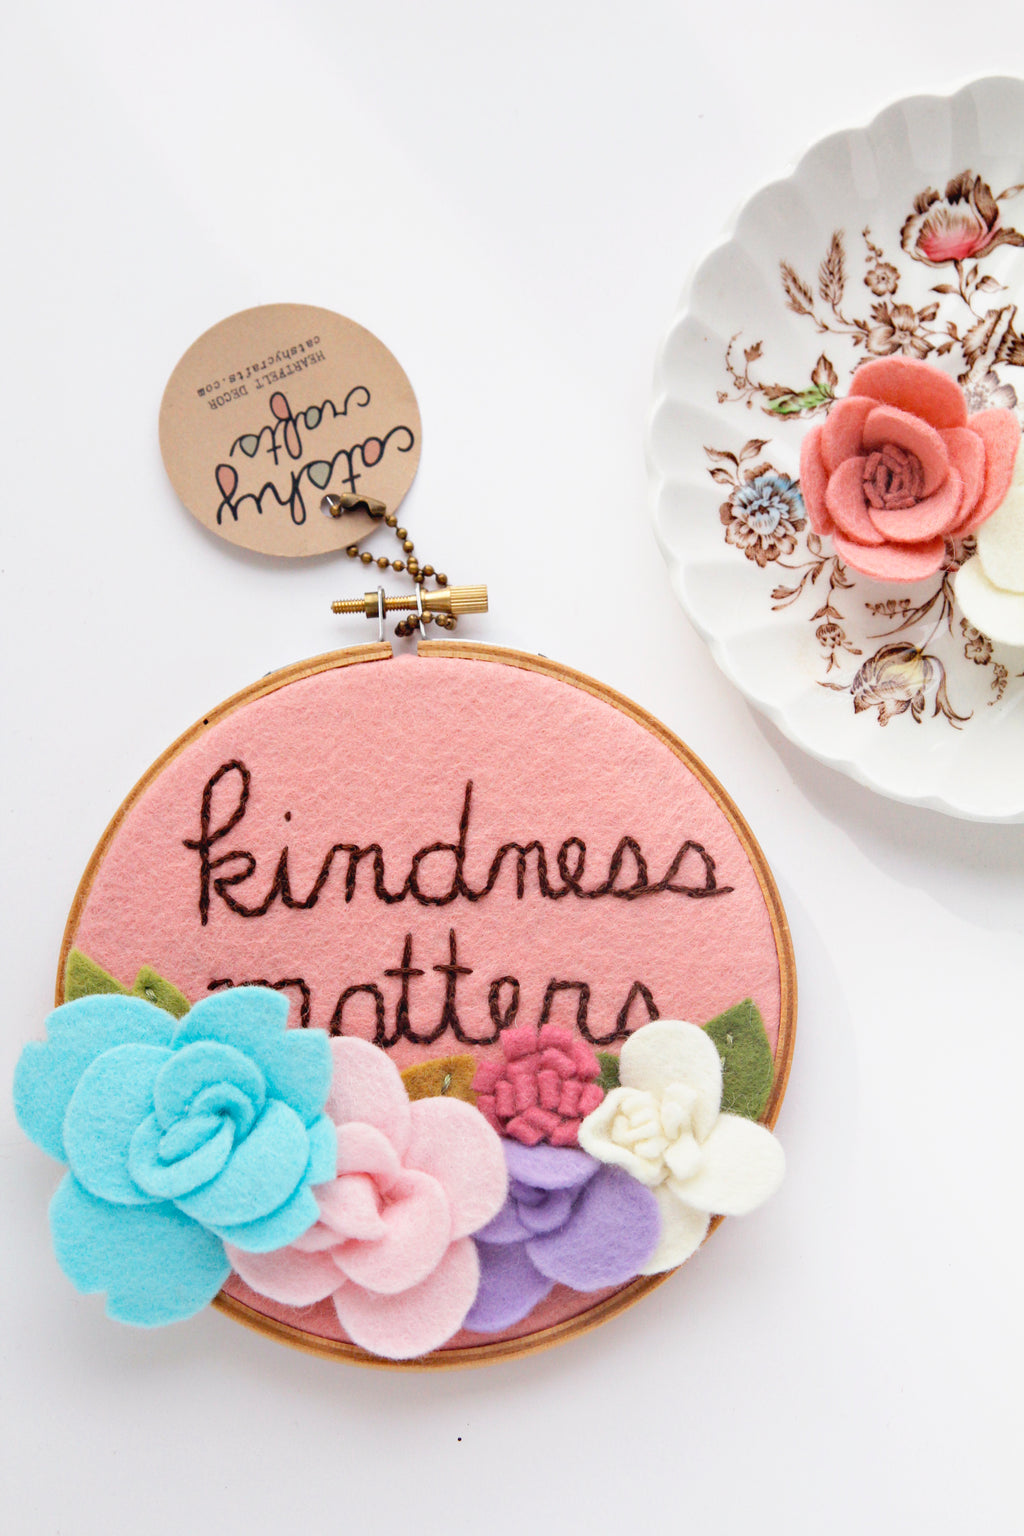 Kindness Matters Felt Flower Embroidery Hoop Art